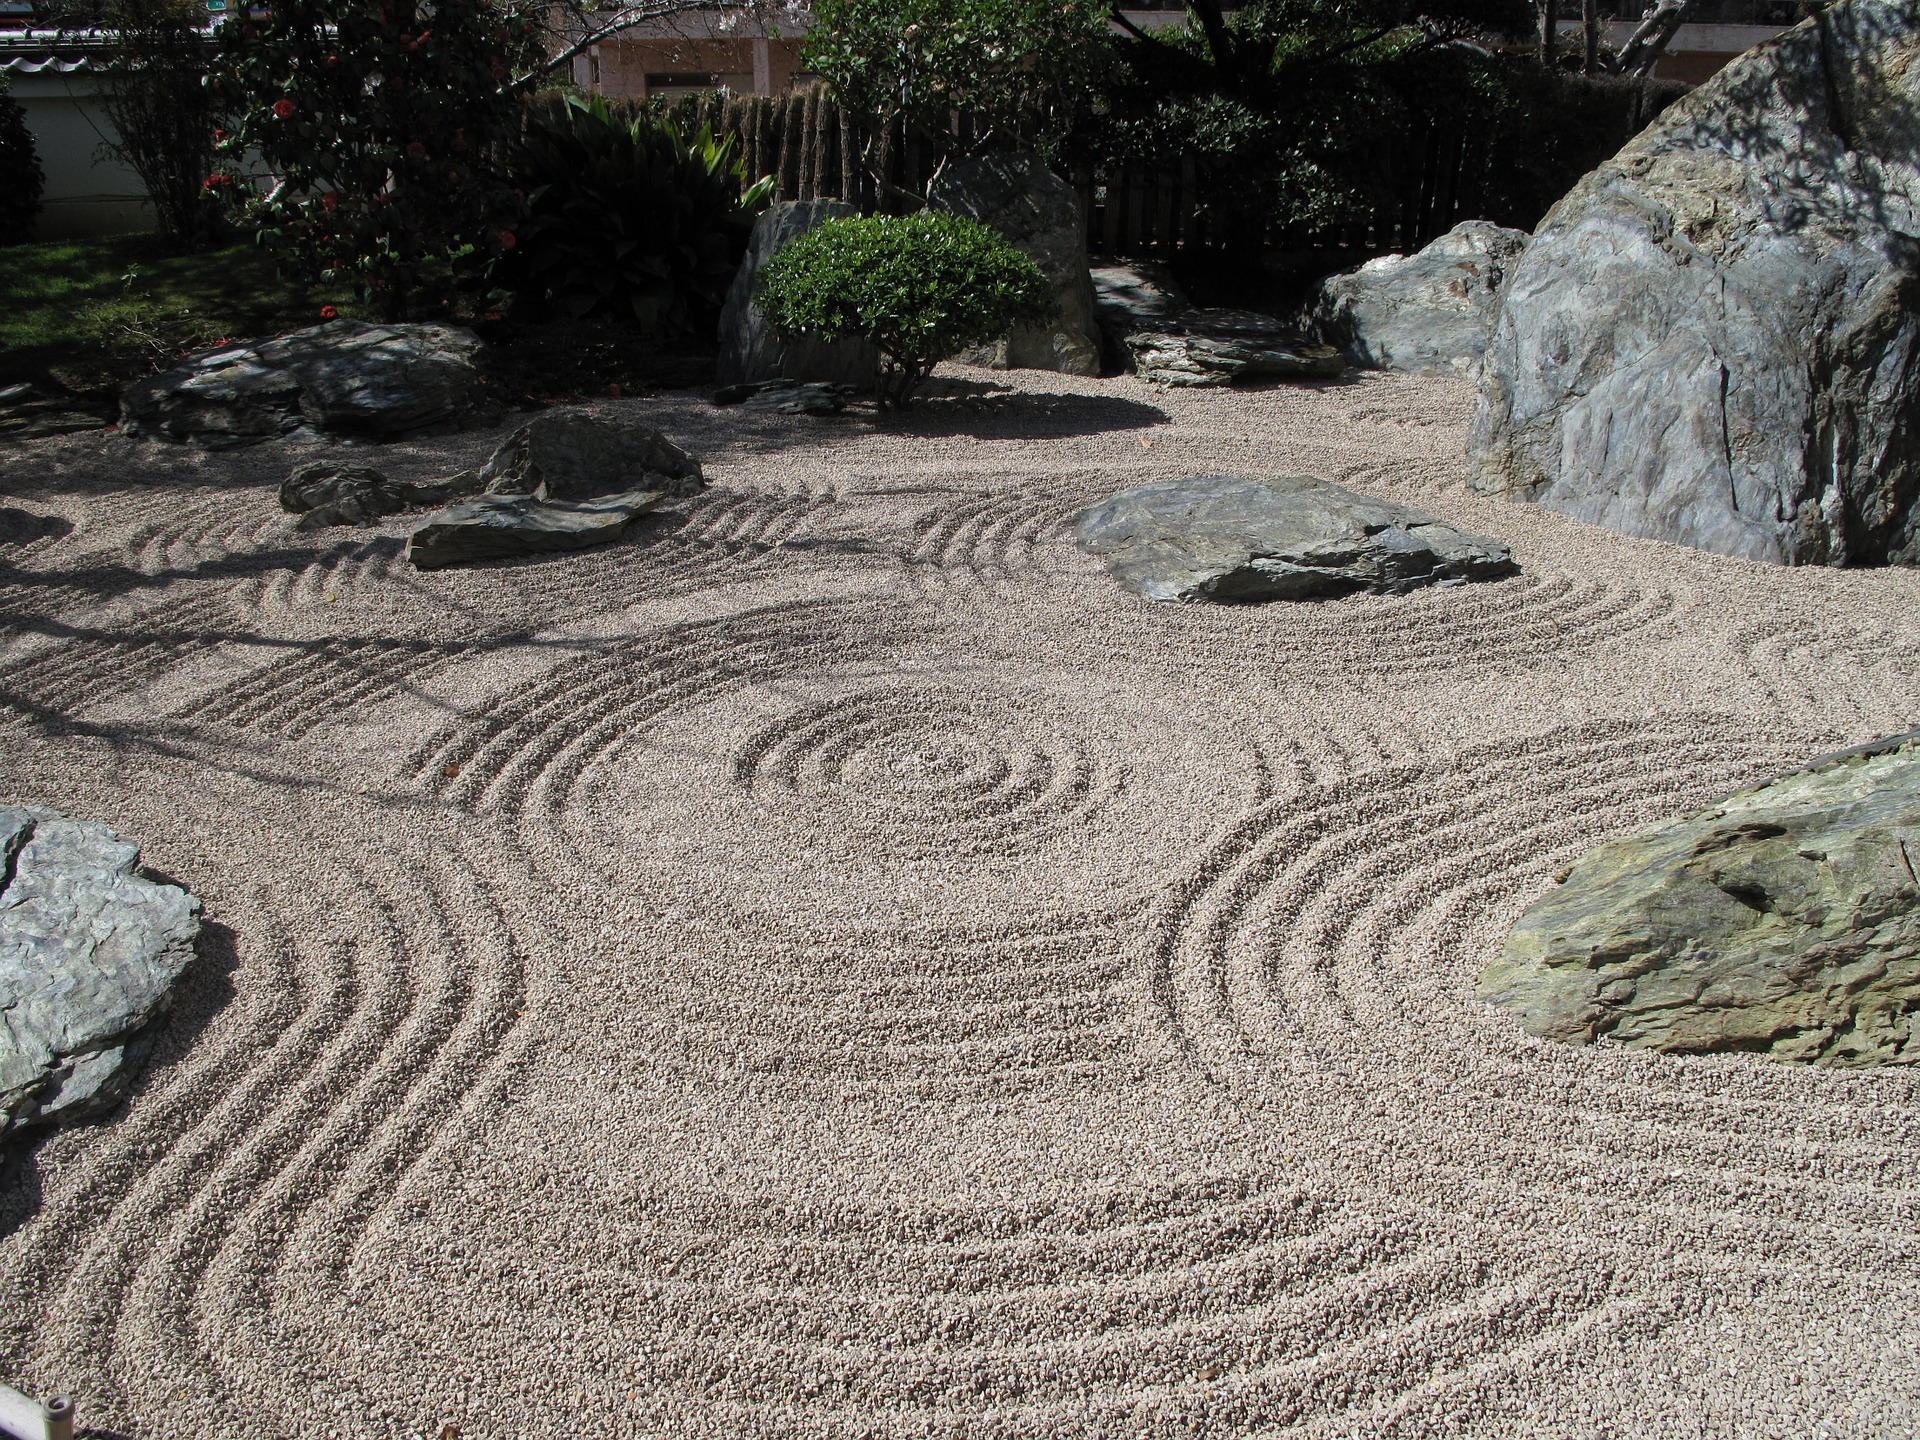 Backyard zen garden with a pattern of circles.